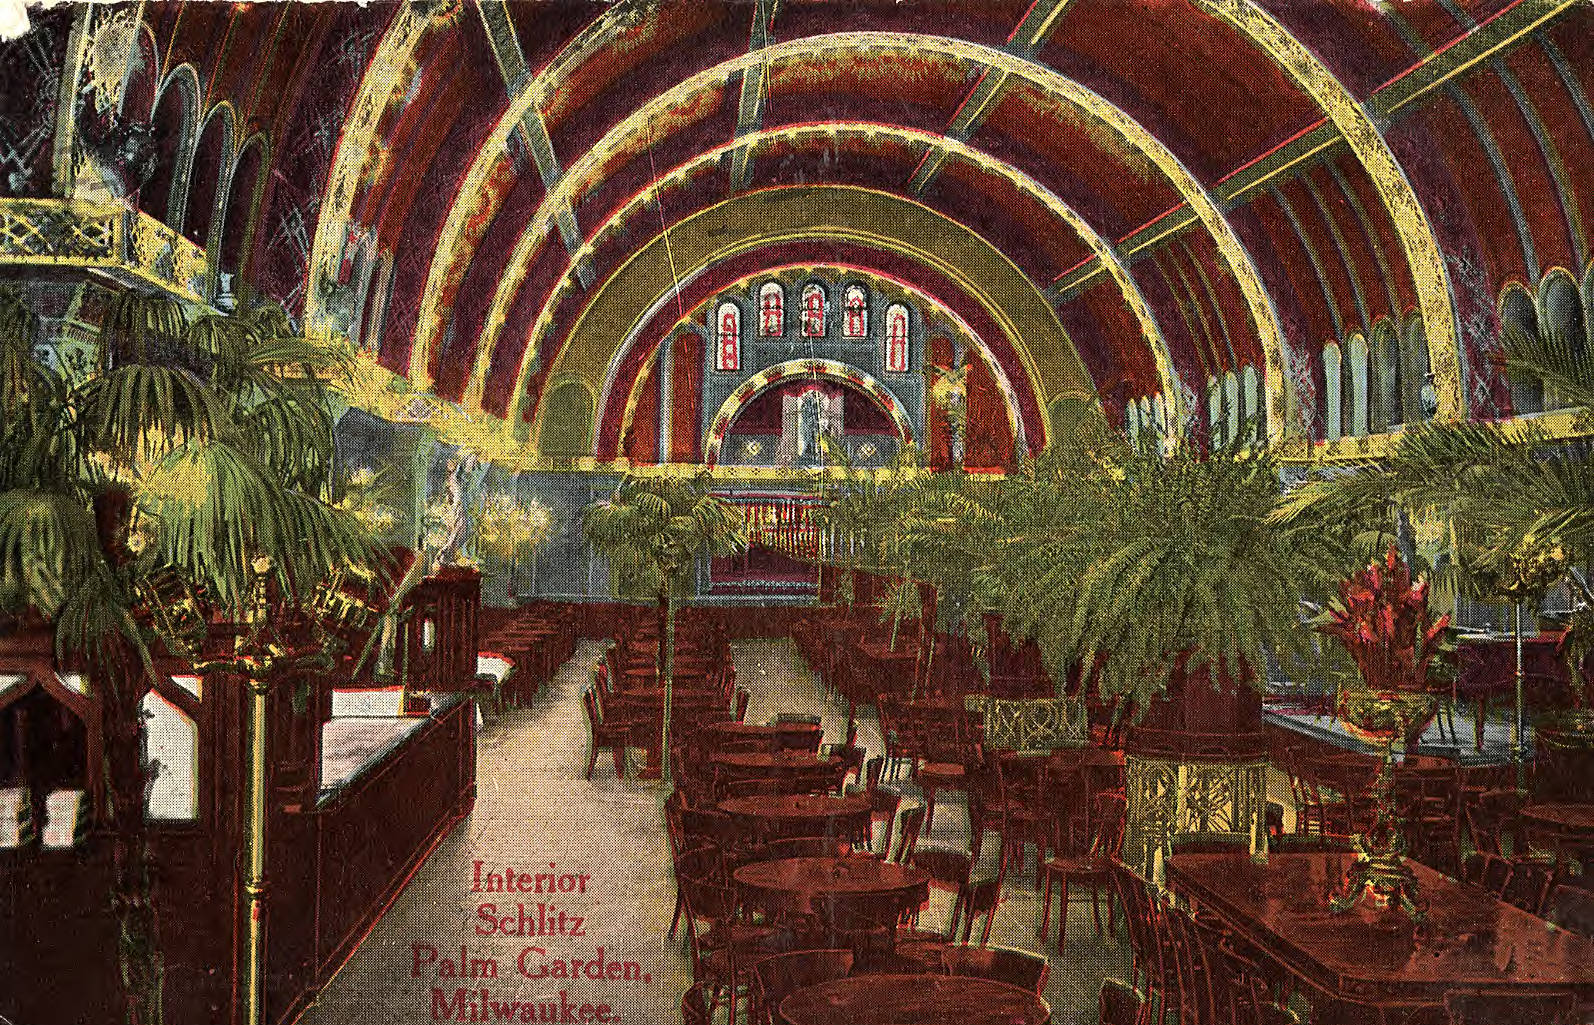 First opened in 1896, the Schlitz Palm Garden was Milwaukee's most famous beer hall.